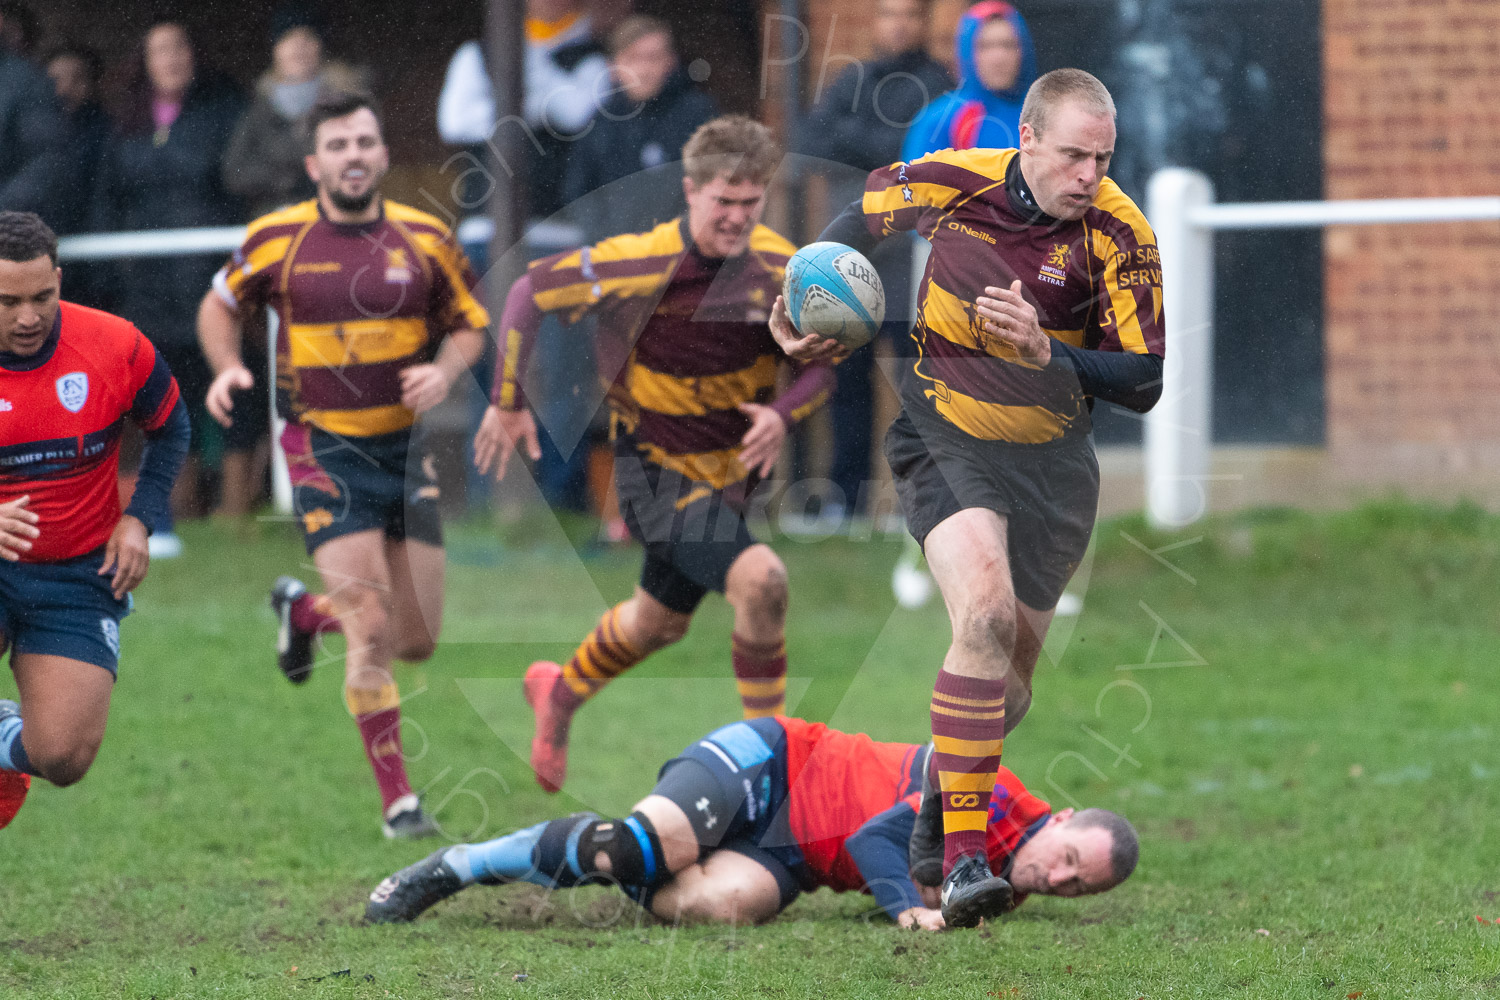 20181027 Amp Extras vs St Neots 2nd XV #2556